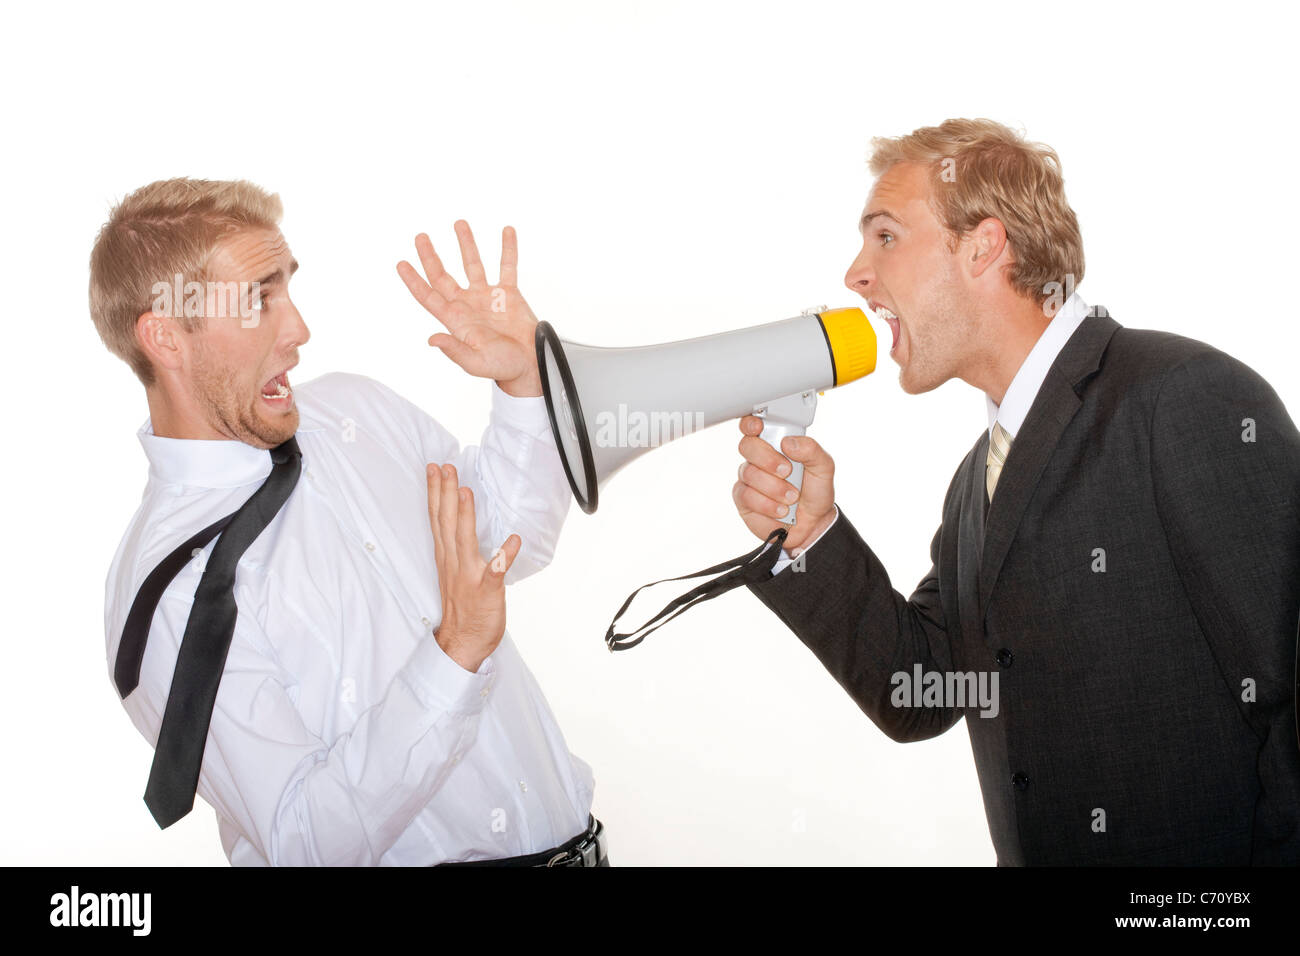 angry boss in suit yelling into a megaphone to scared employee - isolated on white - Stock Image